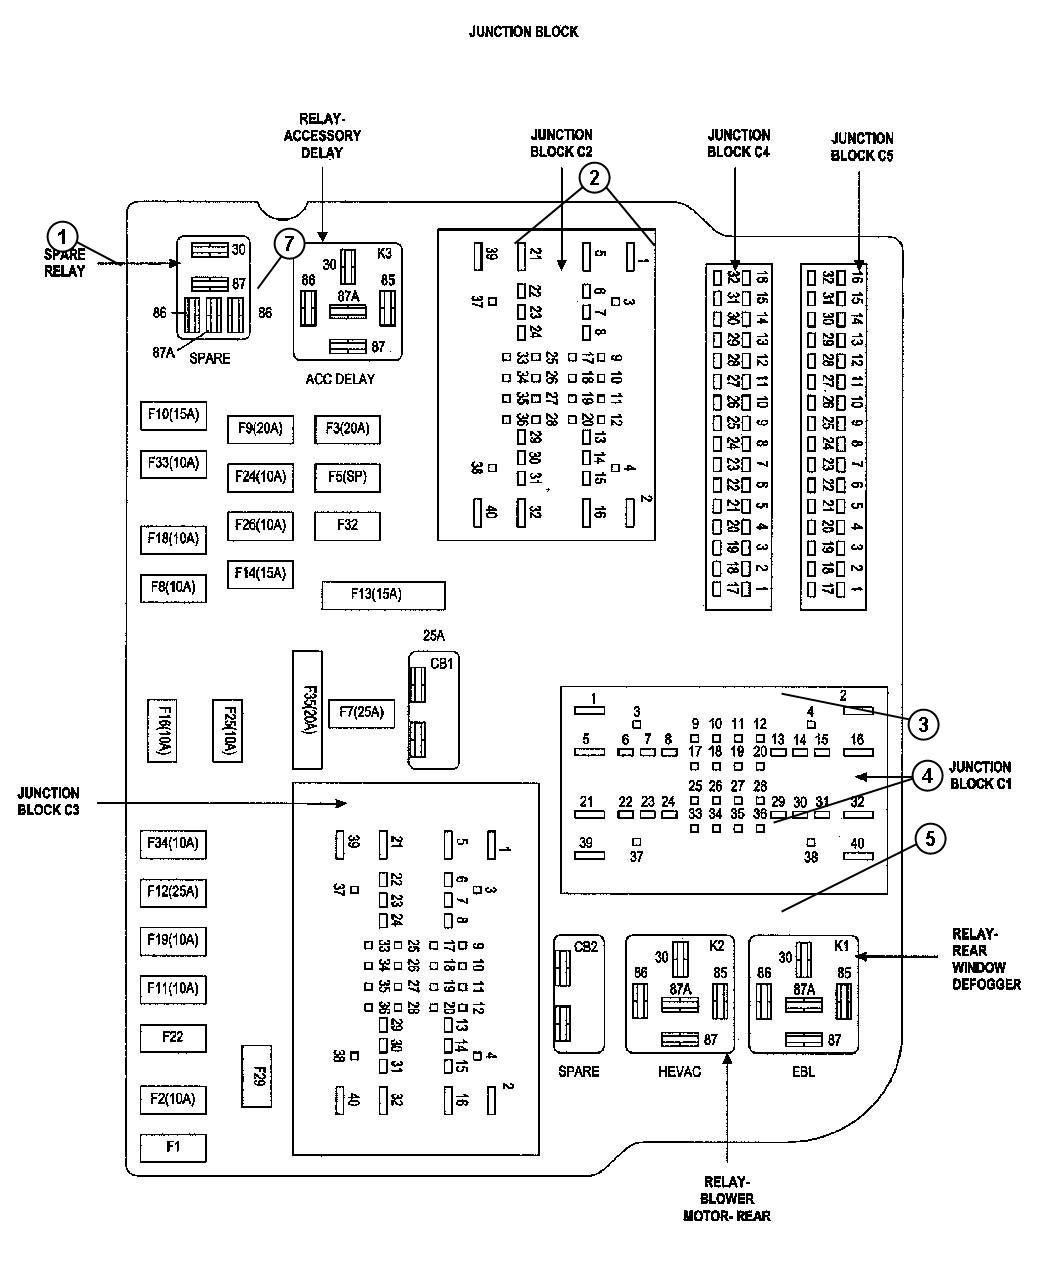 roger vivi ersaks: 2008 Chrysler 300 Fuse Panel Diagram